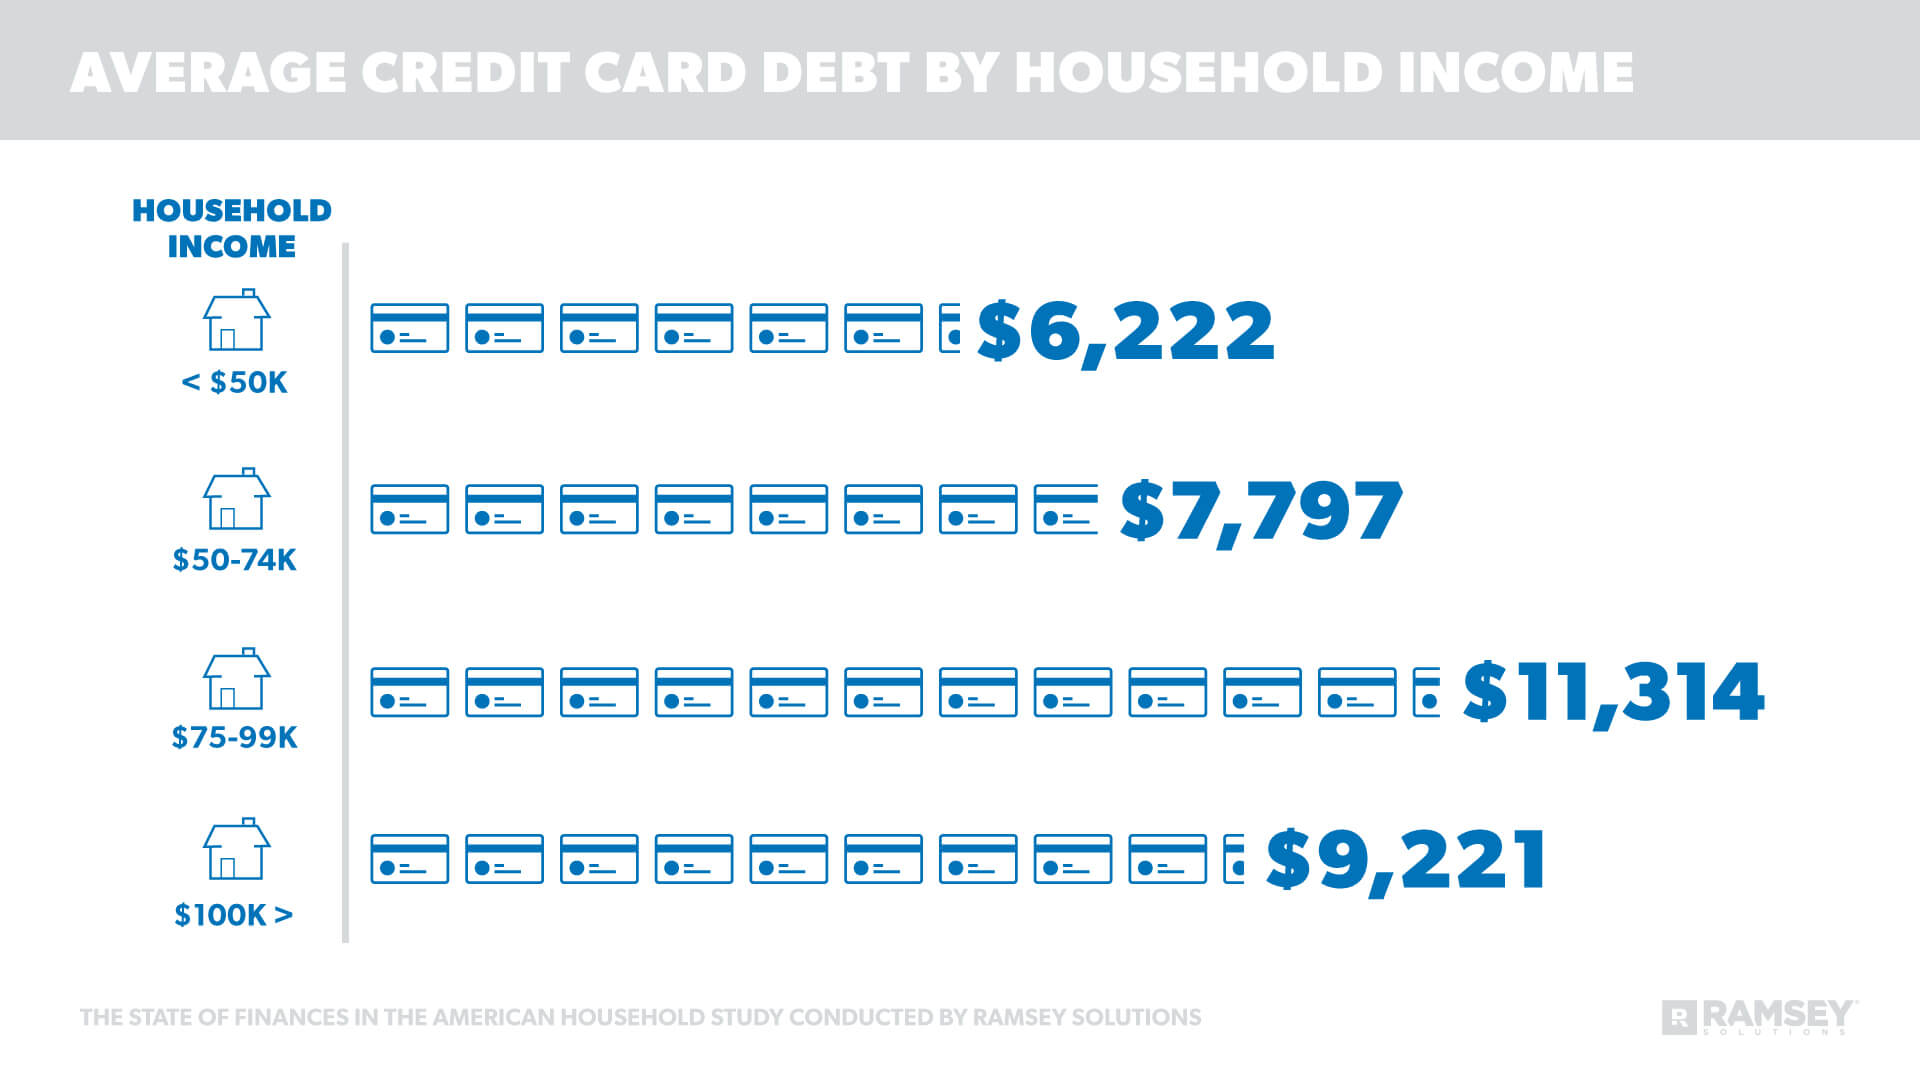 Average Credit Card Debt by Household Income